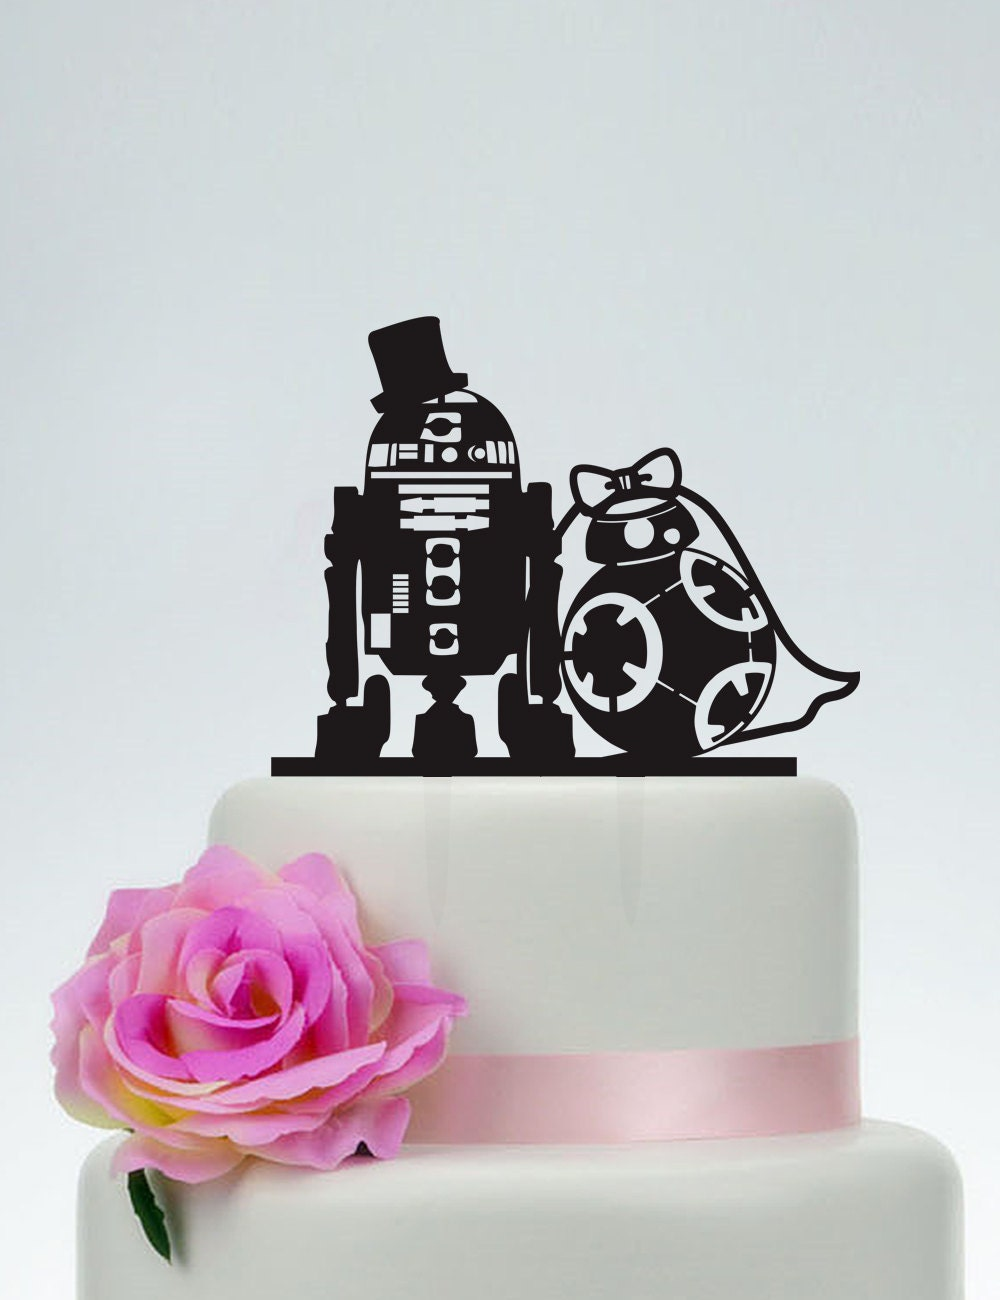 r2d2 wedding cake topper wedding cake topperstar wars cake topperr2d2 amp bb8 cake 18951